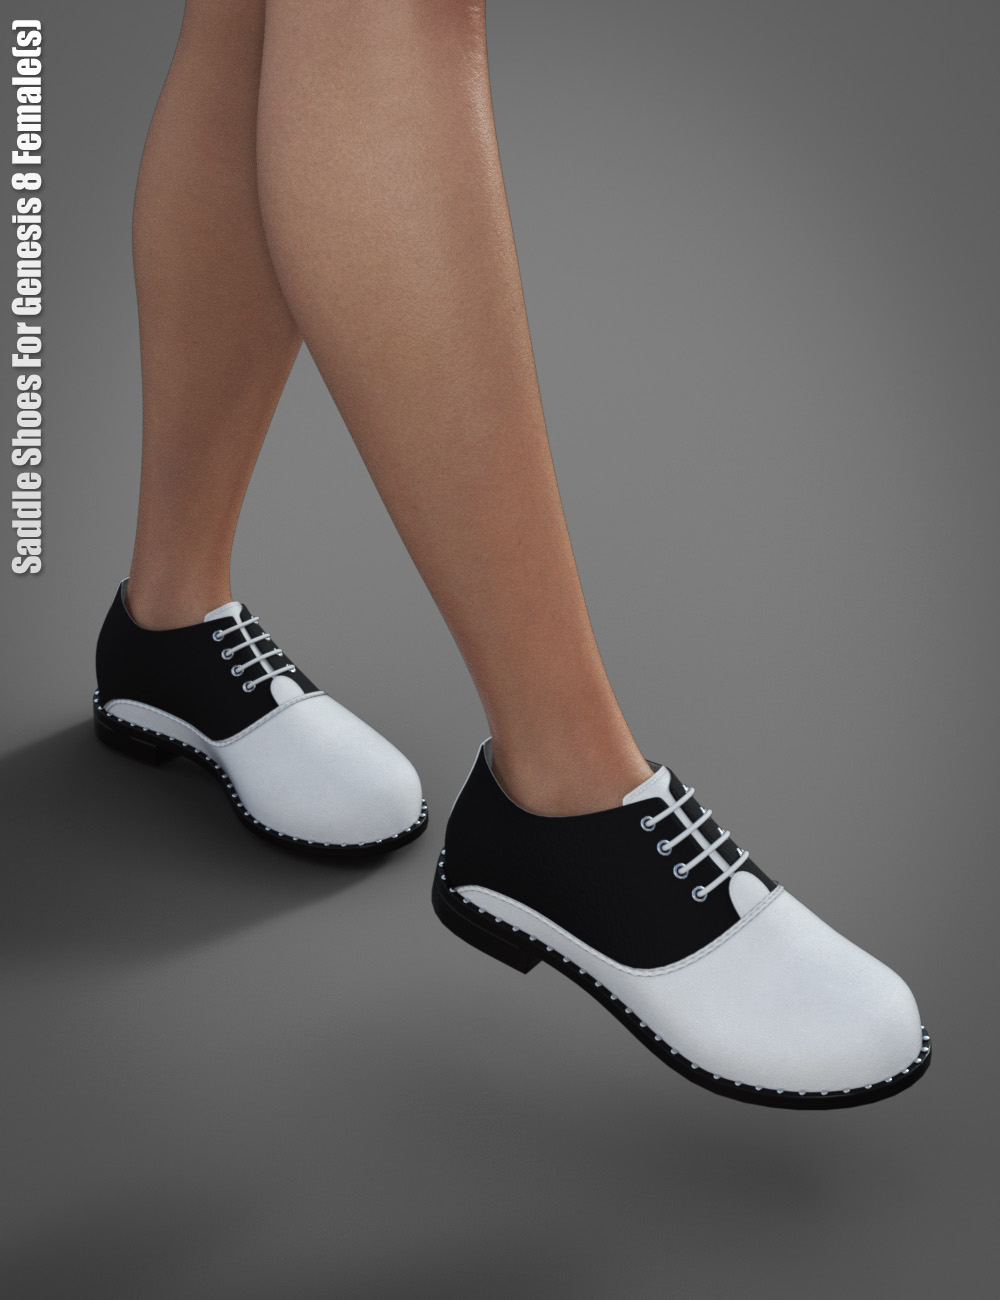 Saddle Shoes For Genesis 8 Female(s) by: dx30, 3D Models by Daz 3D